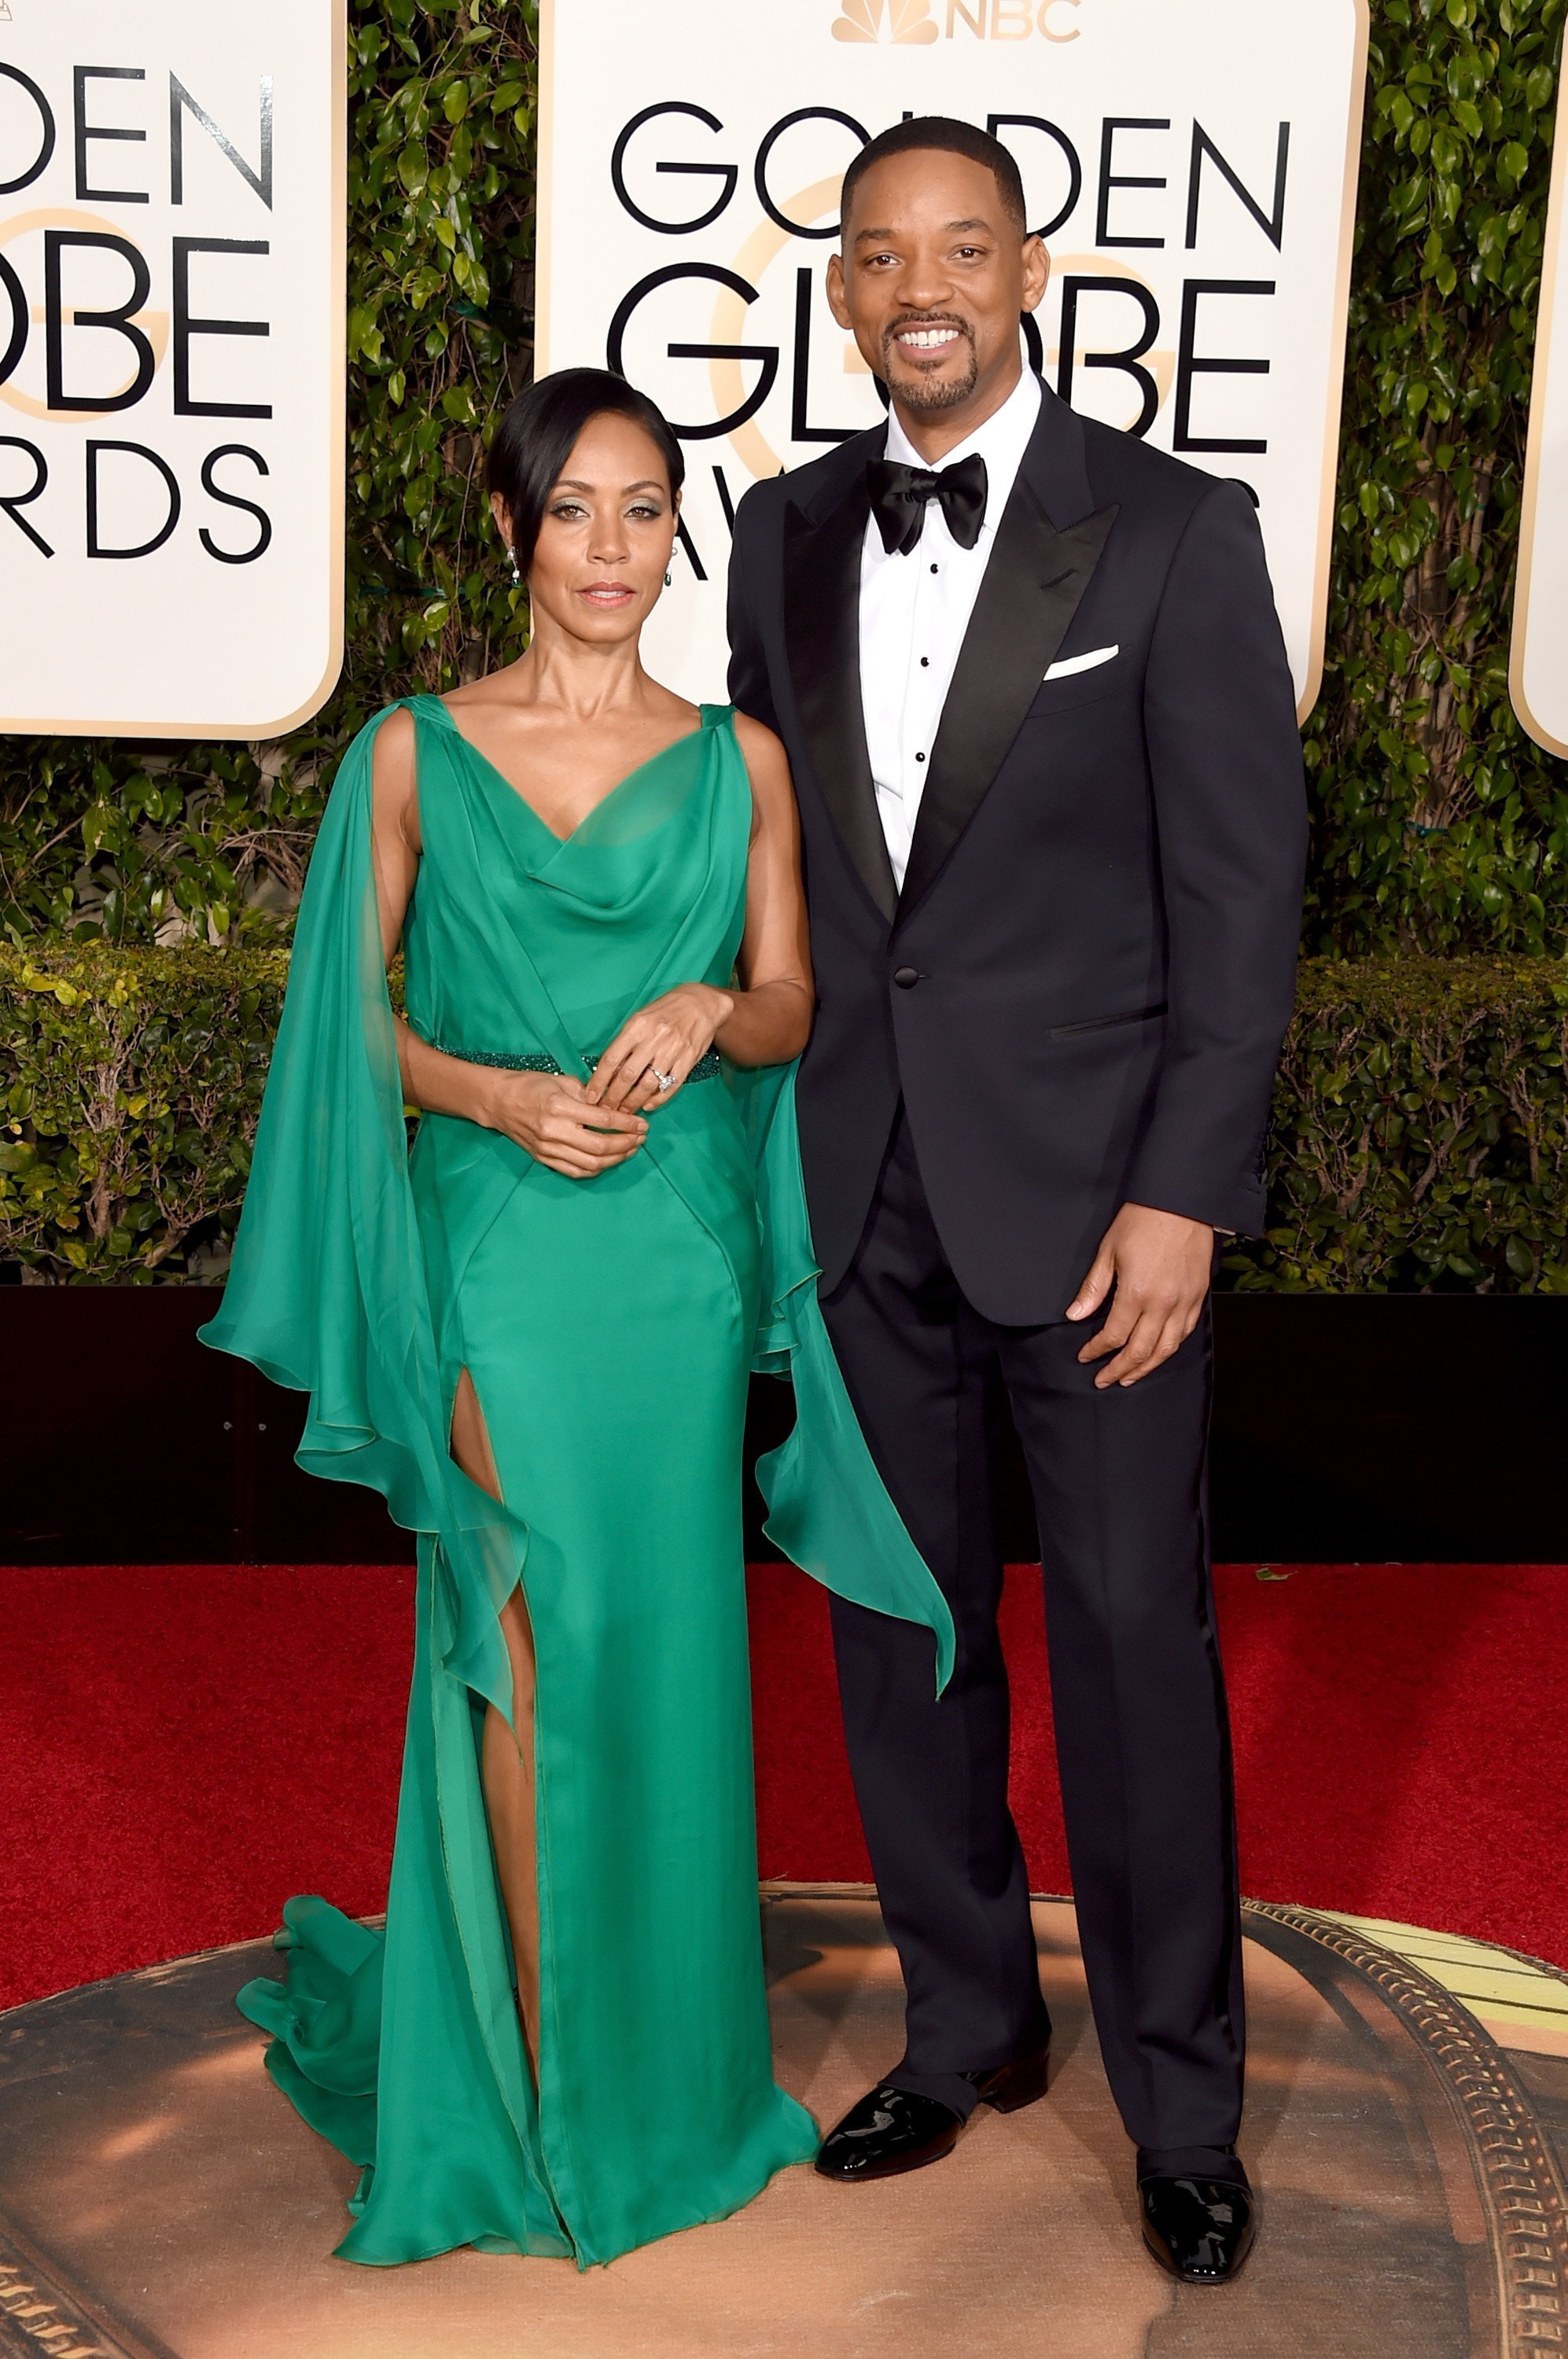 Actors Jada Pinkett Smith and Will Smith attend the 73rd Annual Golden Globe Awards held at the Beverly Hilton Hotel on January 10, 2016| Photo: Getty Images